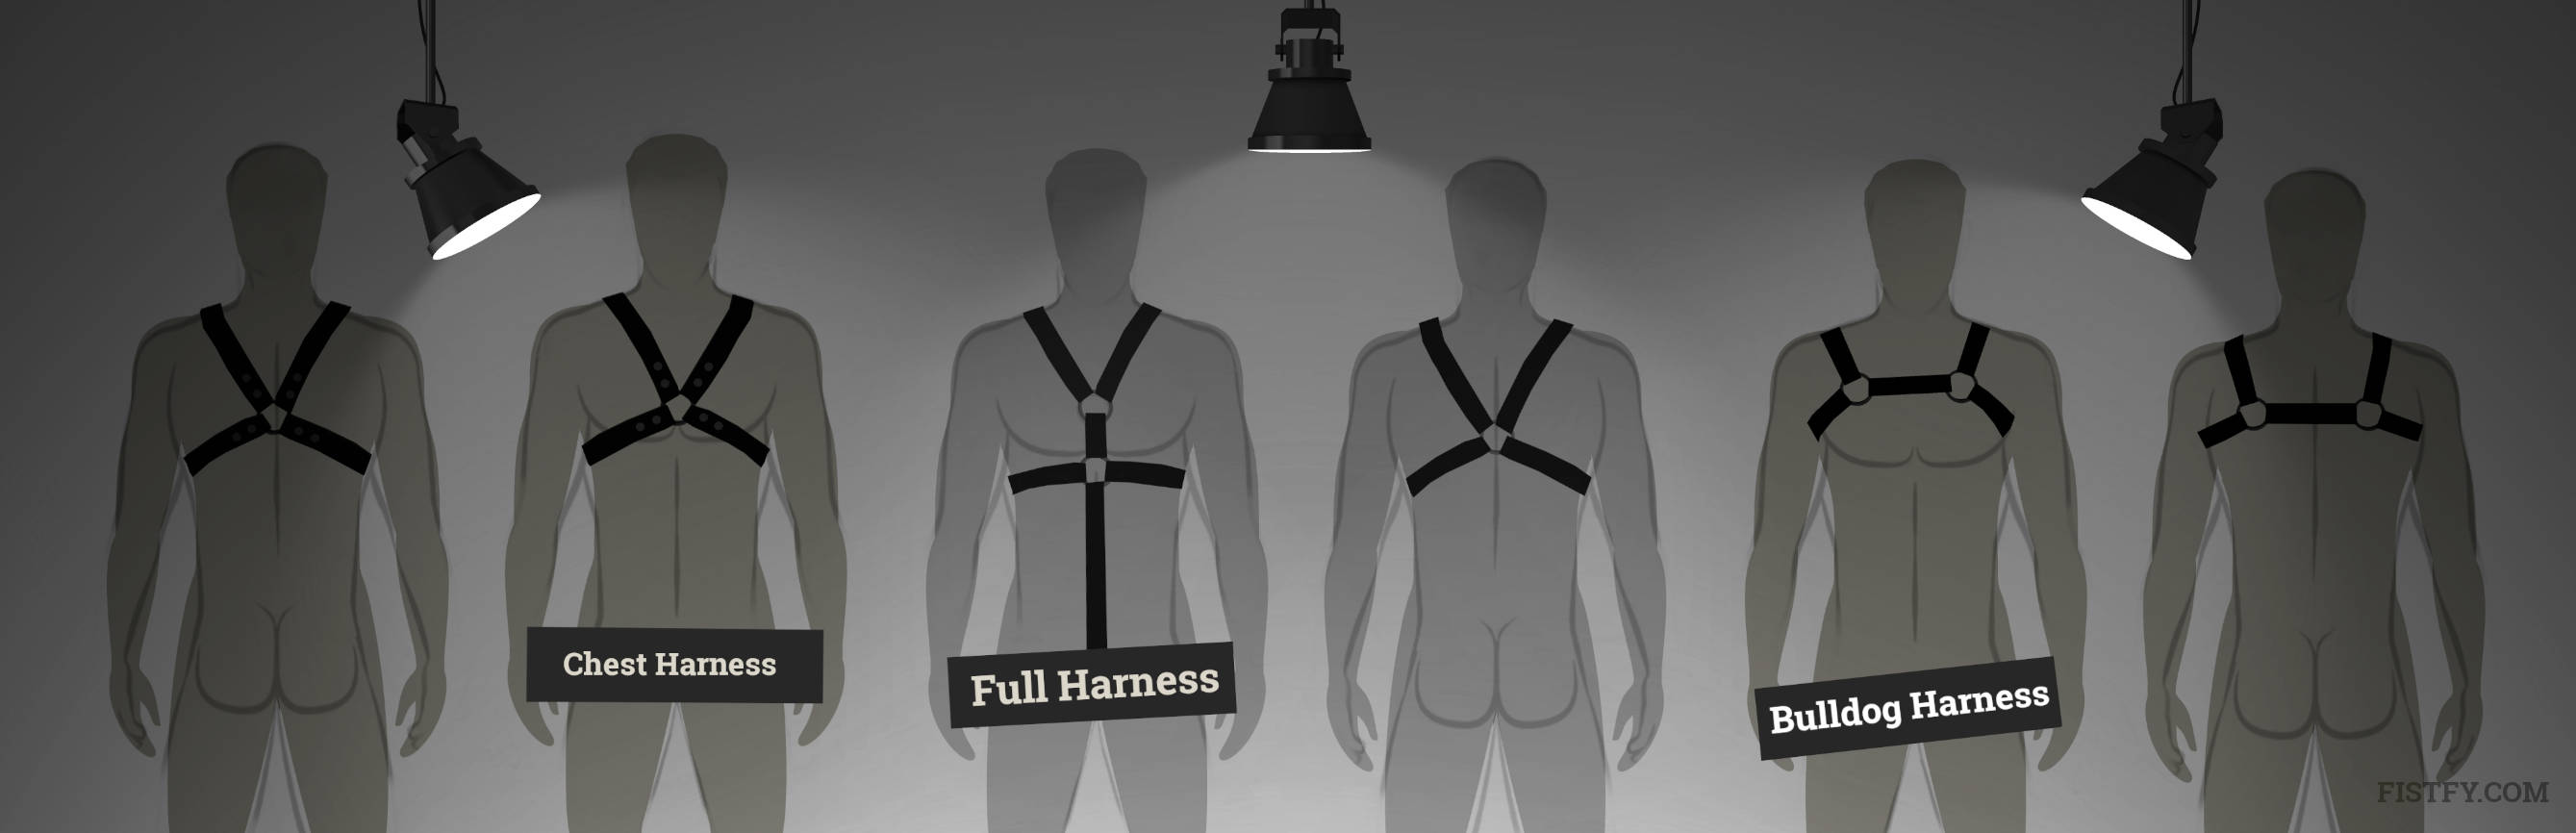 The most common styles of harnesses is The Bulldog, an H-Shape Harness, the classic Chest Harness.